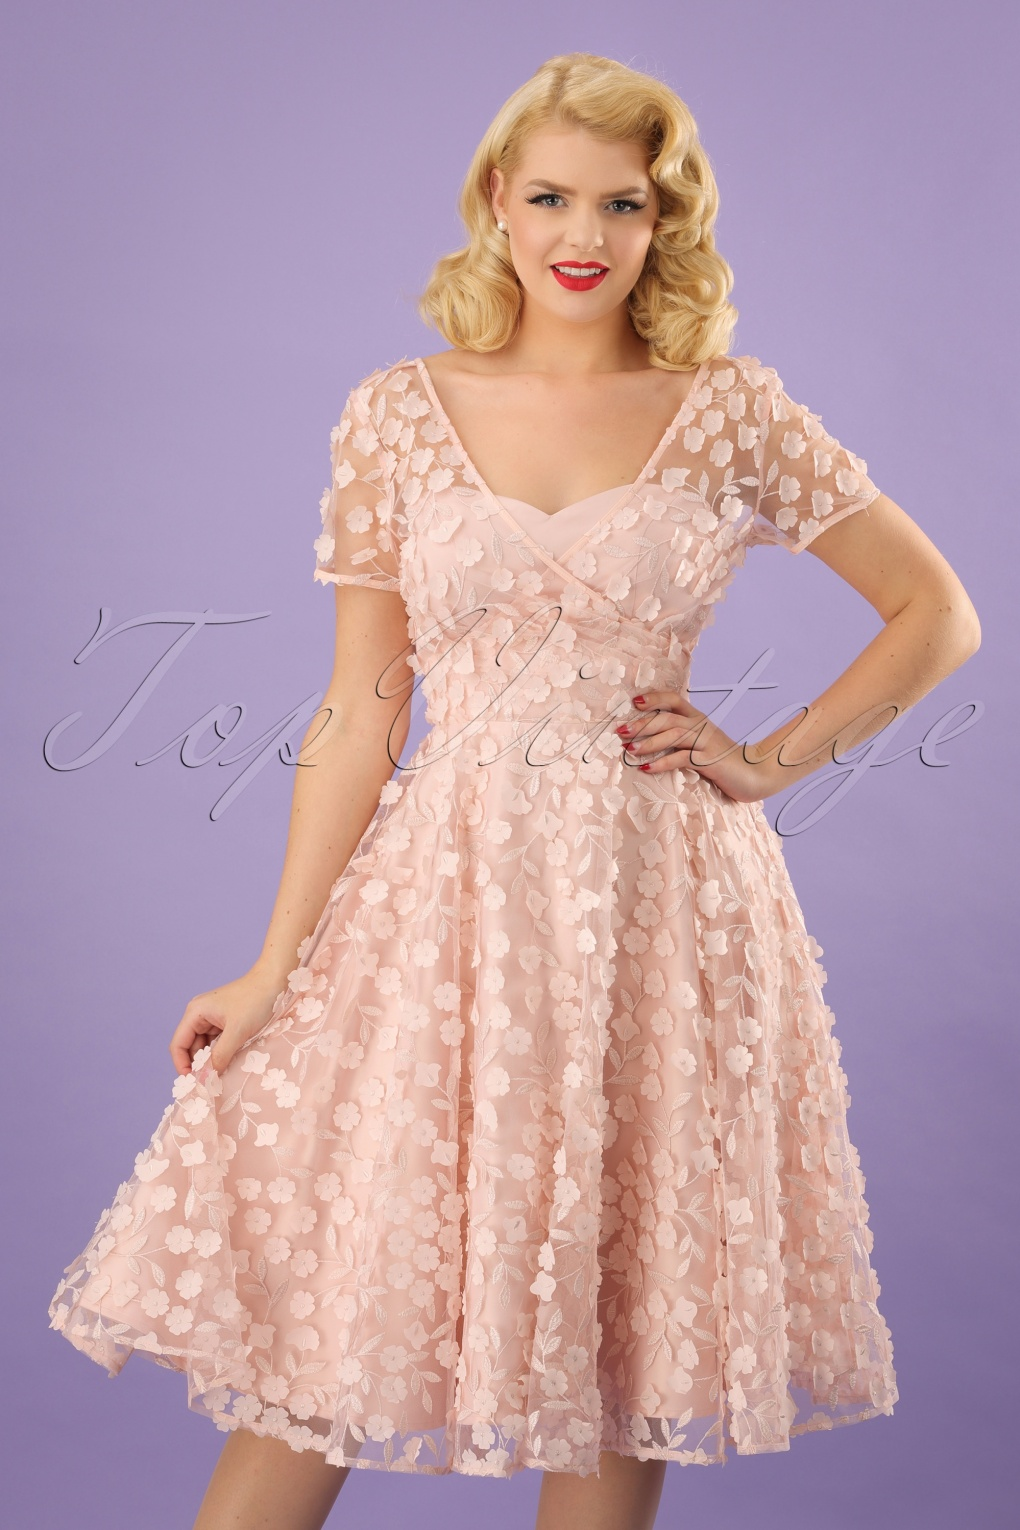 Vintage Cocktail Dresses, Party Dresses, Prom Dresses